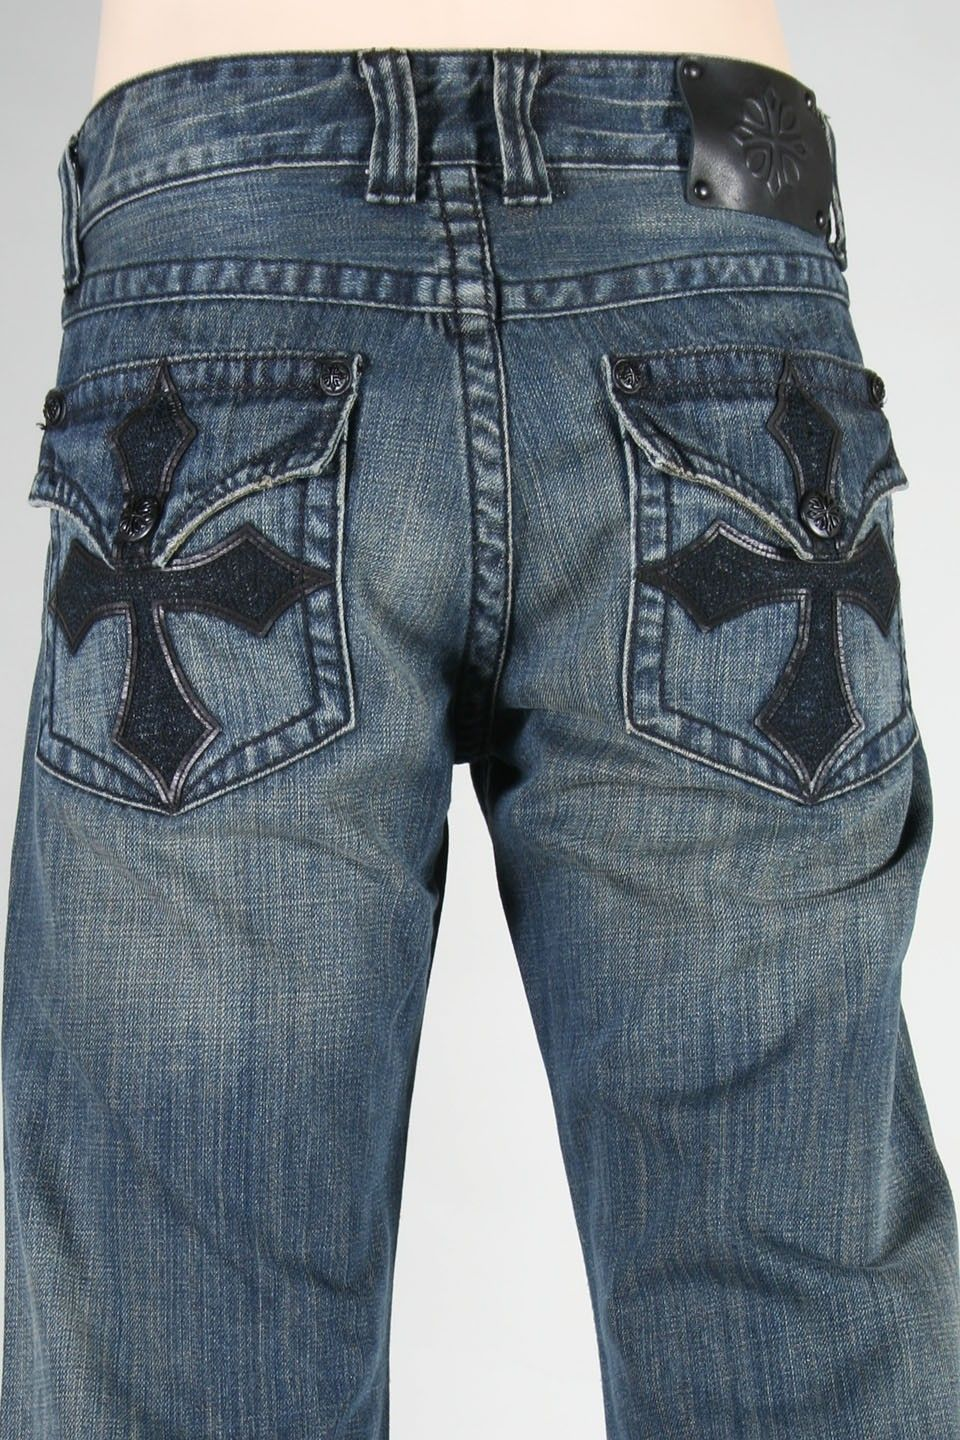 Affliction Clothing Cross Flap Rock Men's Distressed Jeans Affliction®  Cross Flap Rock Distress Jeans for